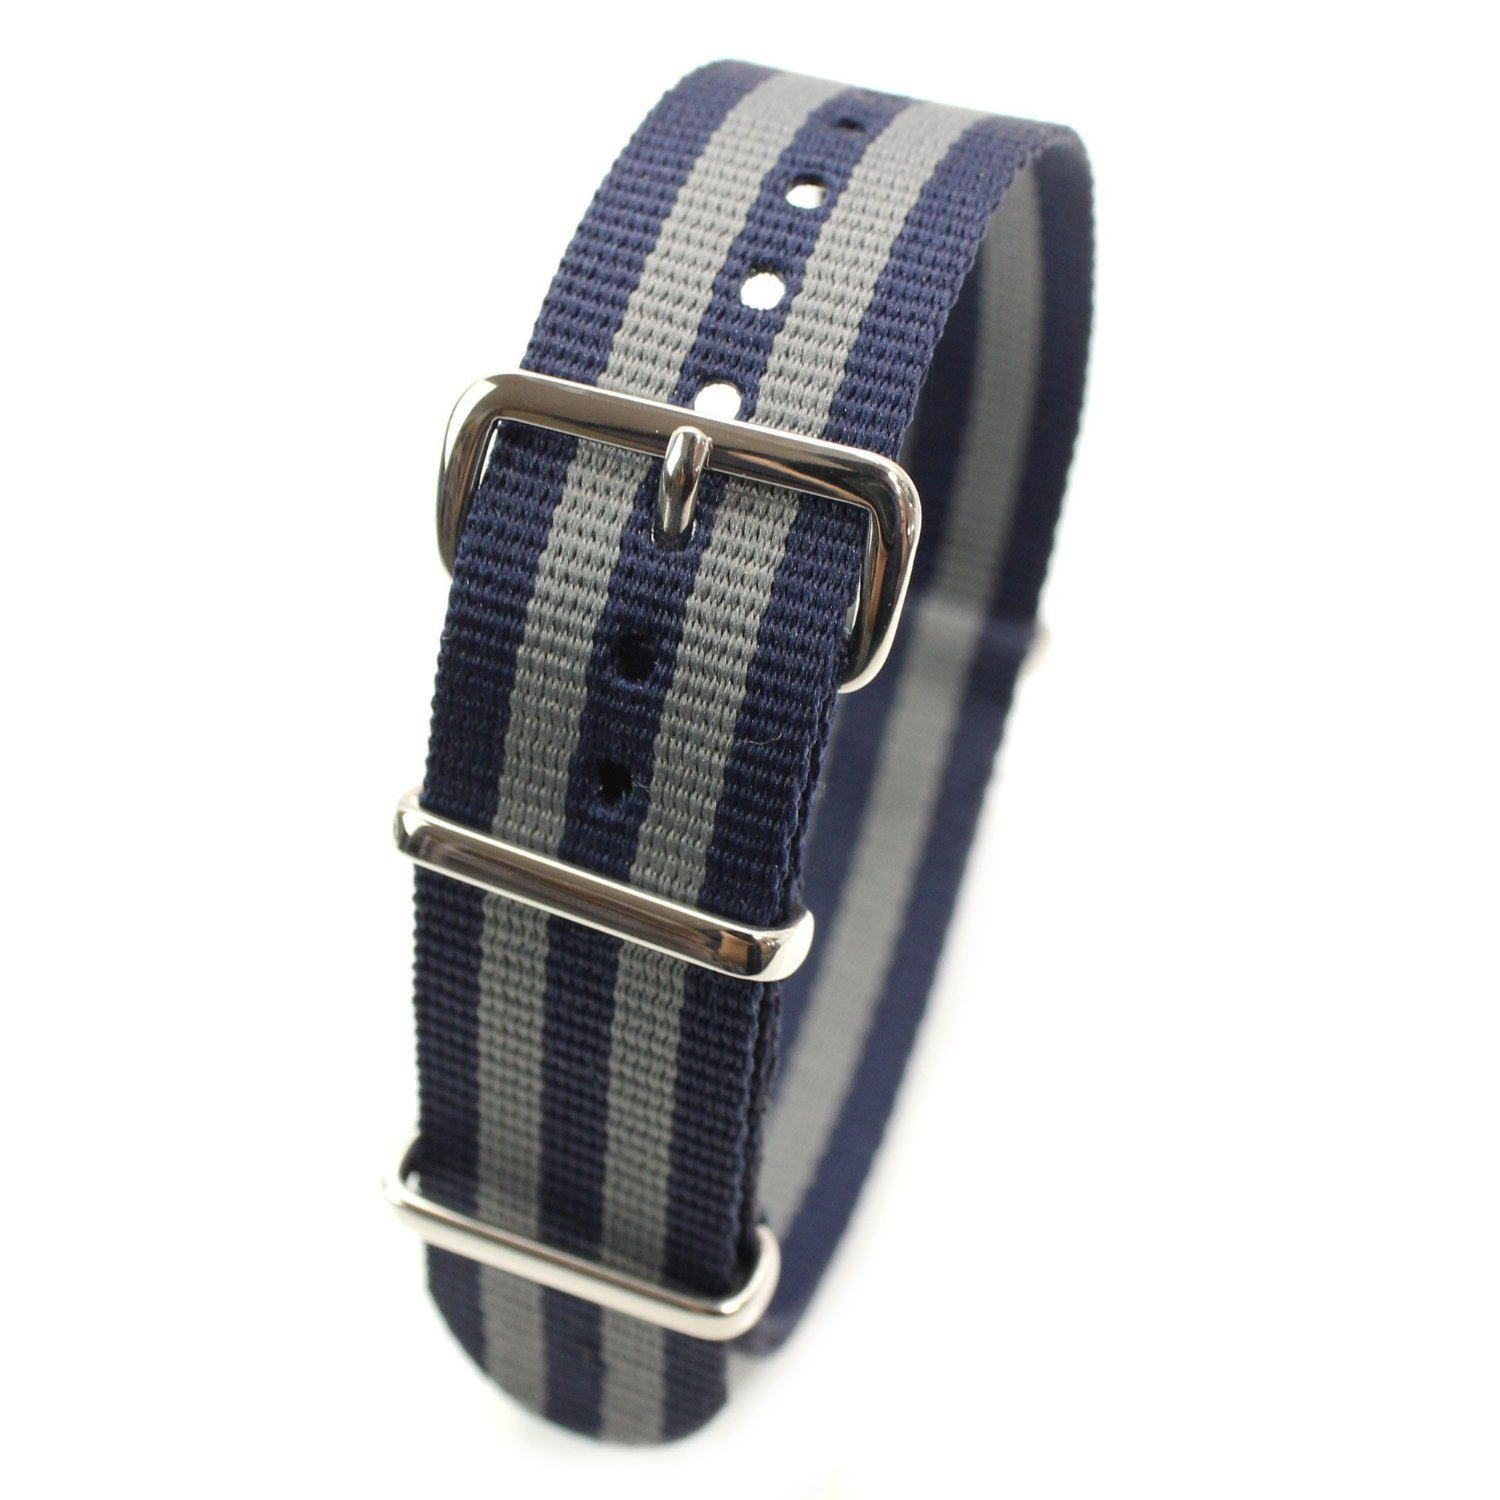 HDT Design N.A.T.O. Type Nylon Watch Strap [James Bond Navy & Gray 22mm]